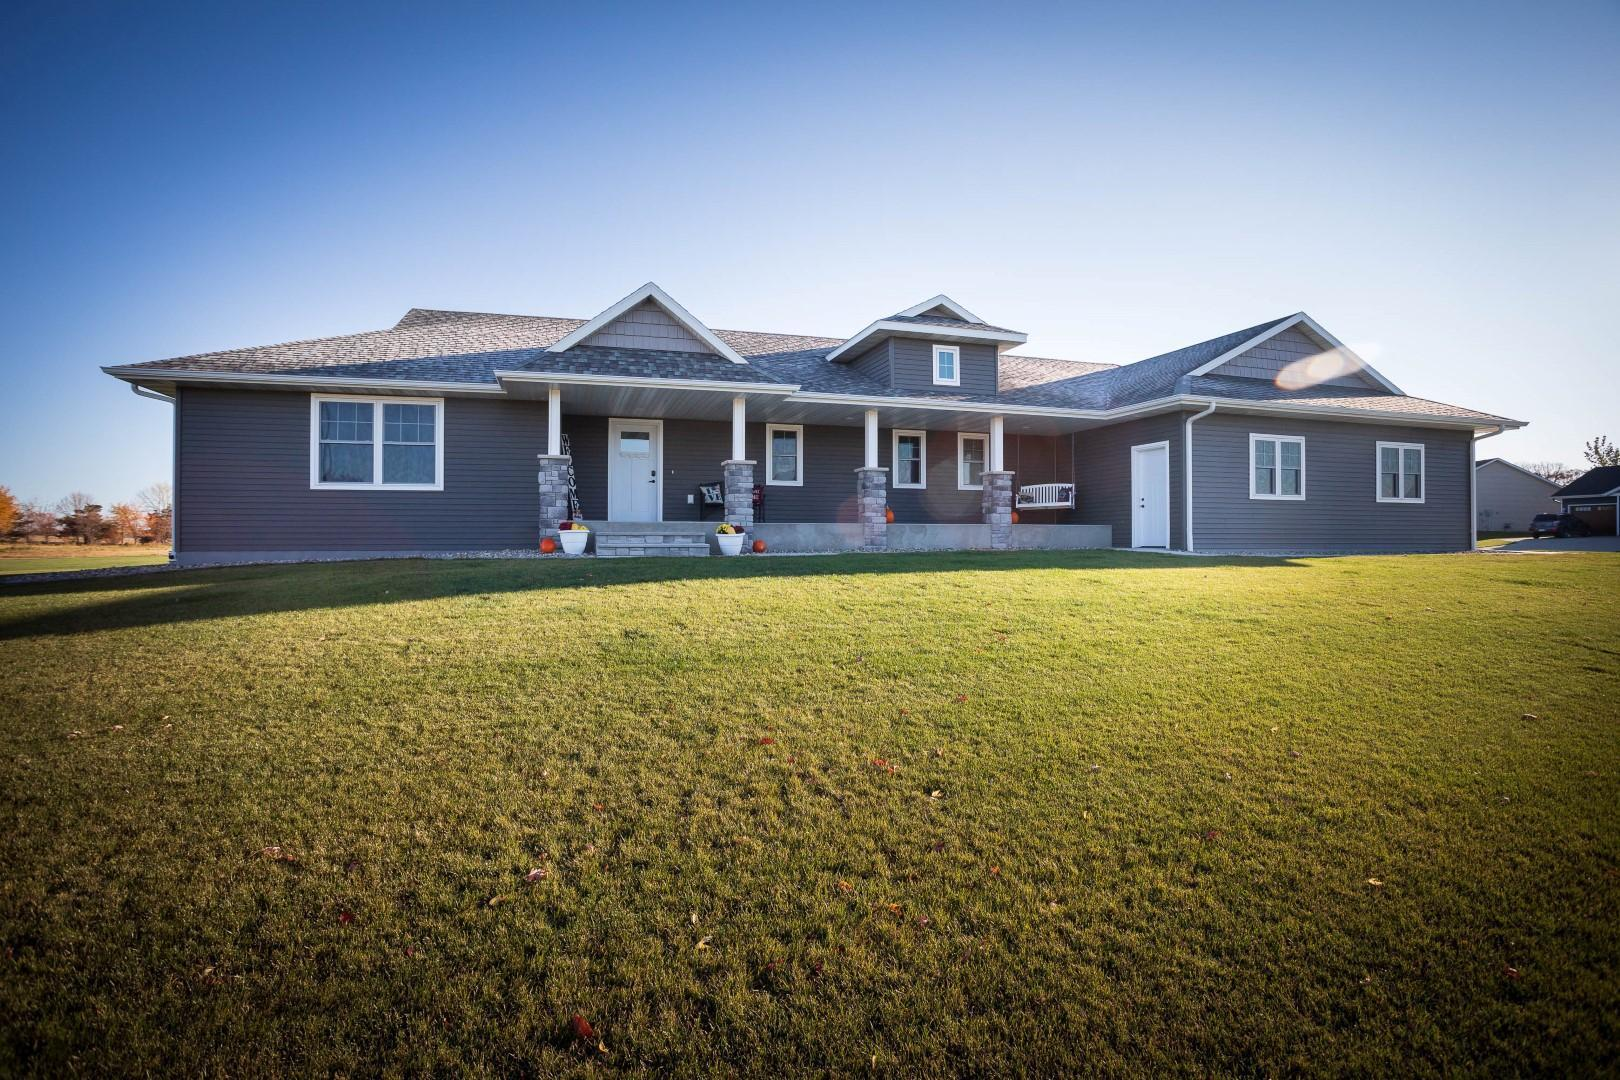 Do you recognize this STUNNING home from the 2019 Parade of Homes? Was it a dream that you wanted to become a reality? Here it is!  This 2 year old 4BR, 4BA rambler gives the WOW factor immediately when you walk in as you see the beautiful custom Black Walnut cabinets and trim! Offering all the desirables, this home is sure to check all your boxes: Bright/Open floor plan with a gorgeous kitchen, granite throughout, gas fireplace, spacious owners suite with tiled shower and double sinks, main floor laundry, all bedrooms offer walk-in closets,  14X15 maintenance free deck, 3 stall attached insulated and heated garage situated on ½ acre corner lot and close to bike trail, downtown shopping and quick jaunt to the interstate and so much more! Downstairs is where more entertaining can happen-family room and rec area along with 2 additional very large bedrooms. This one is going to go quick, don't miss your opportunity for a shot at it!